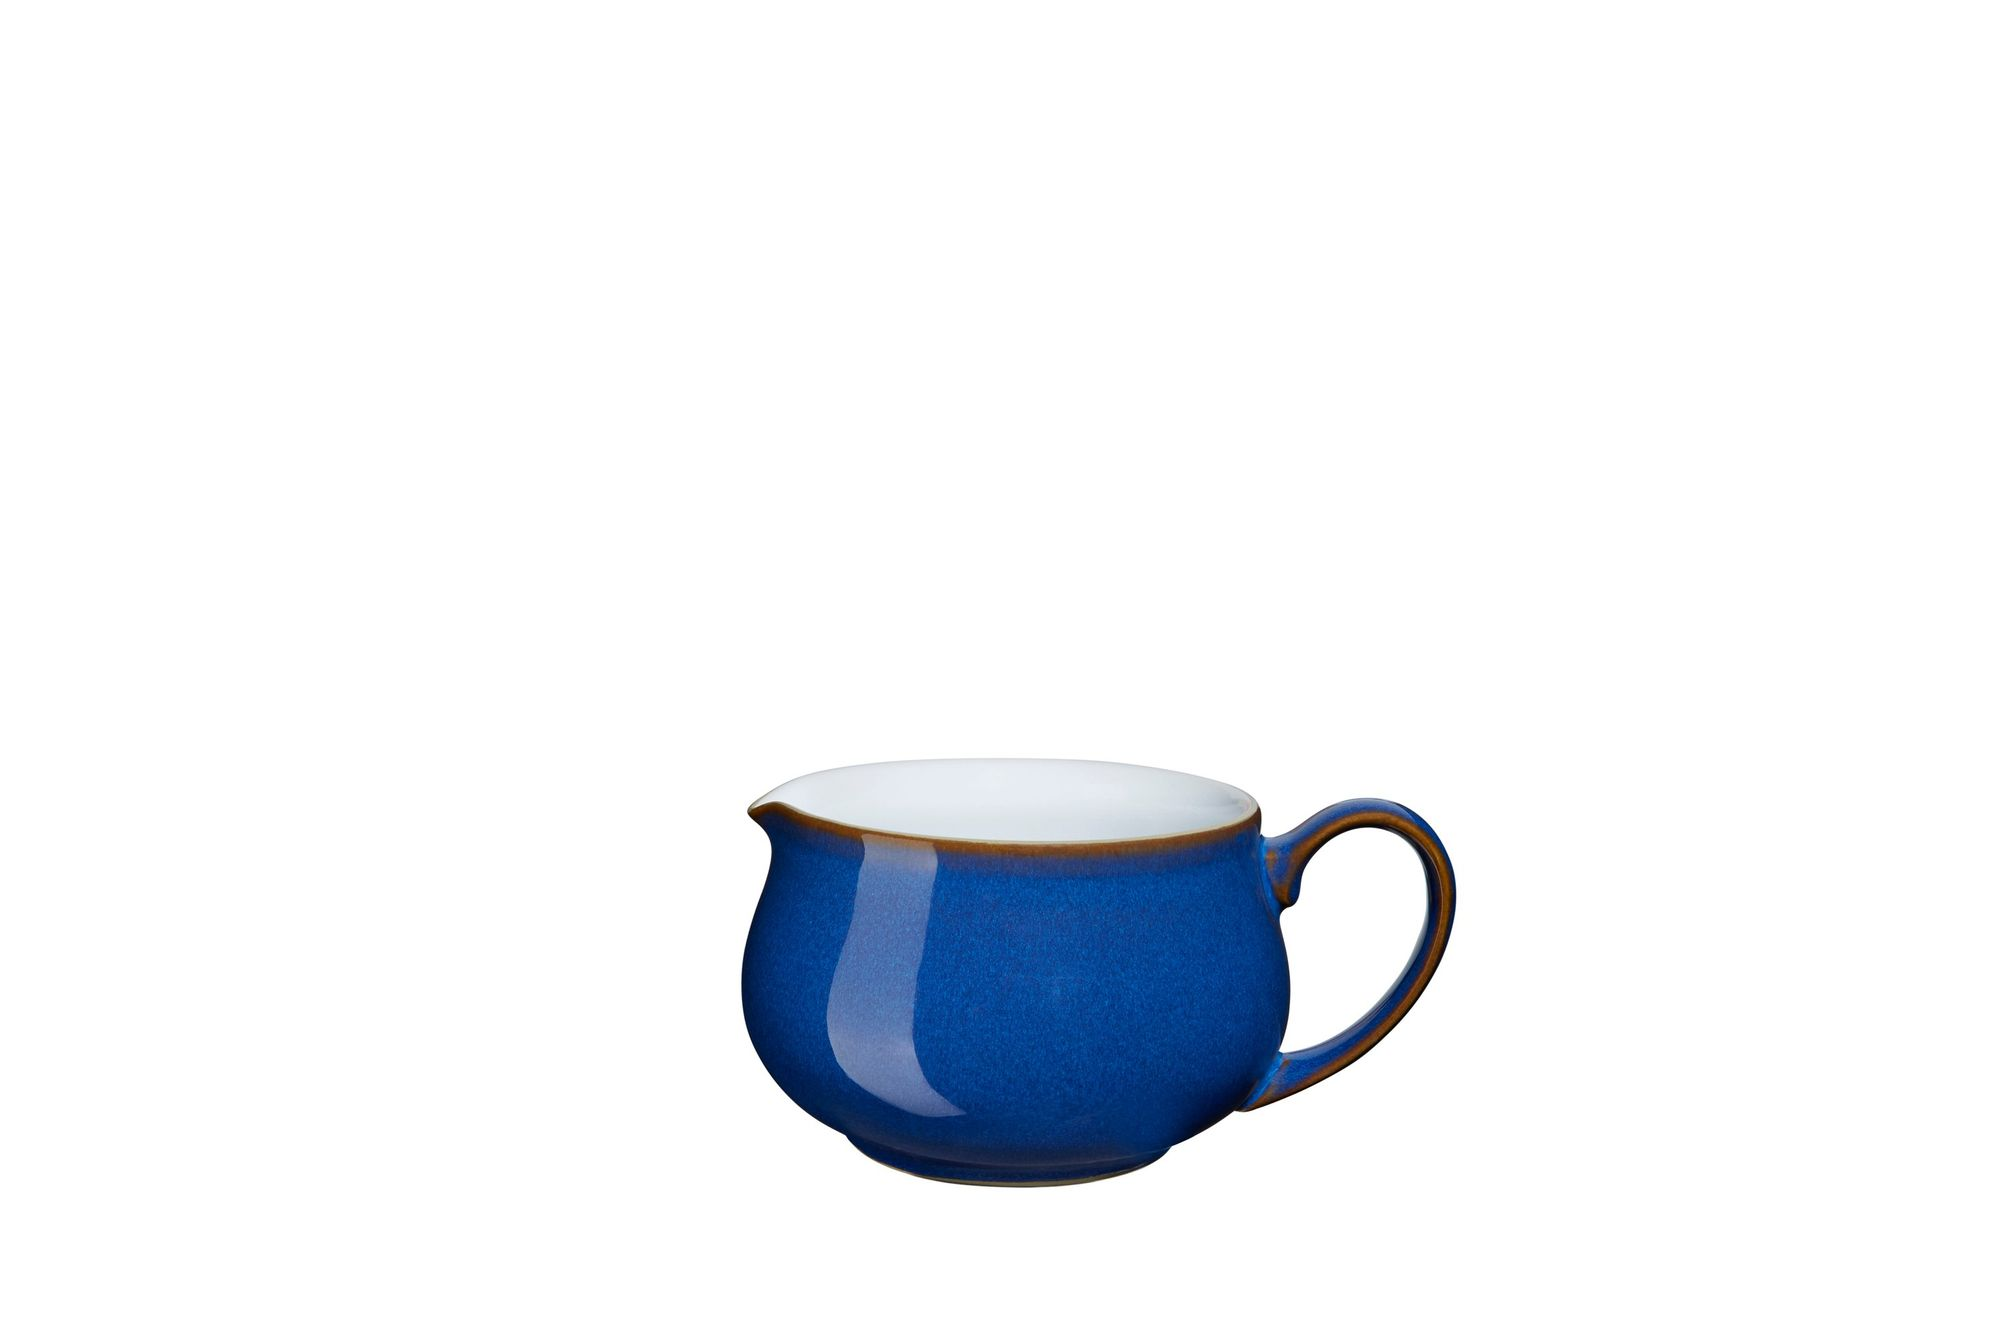 Details about Denby IMPERIAL BLUE Footed Coffee Tea Cup Mug FREE SHIPPING!